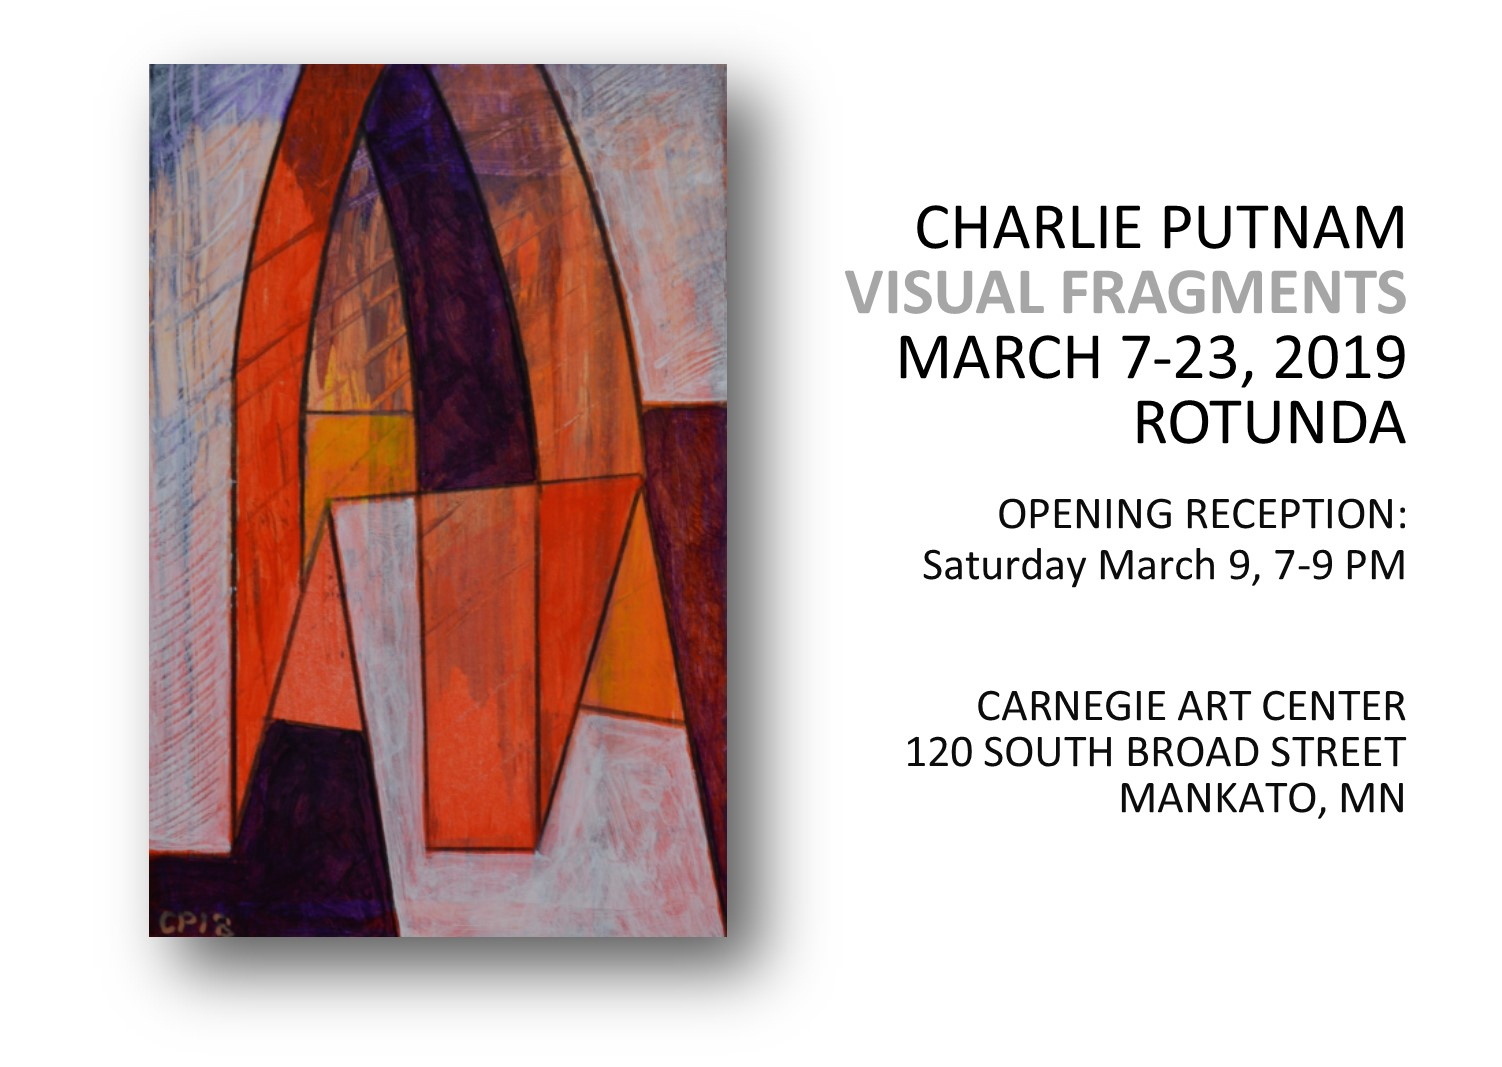 Exhibit - Charlie Putnam: Visual Fragments